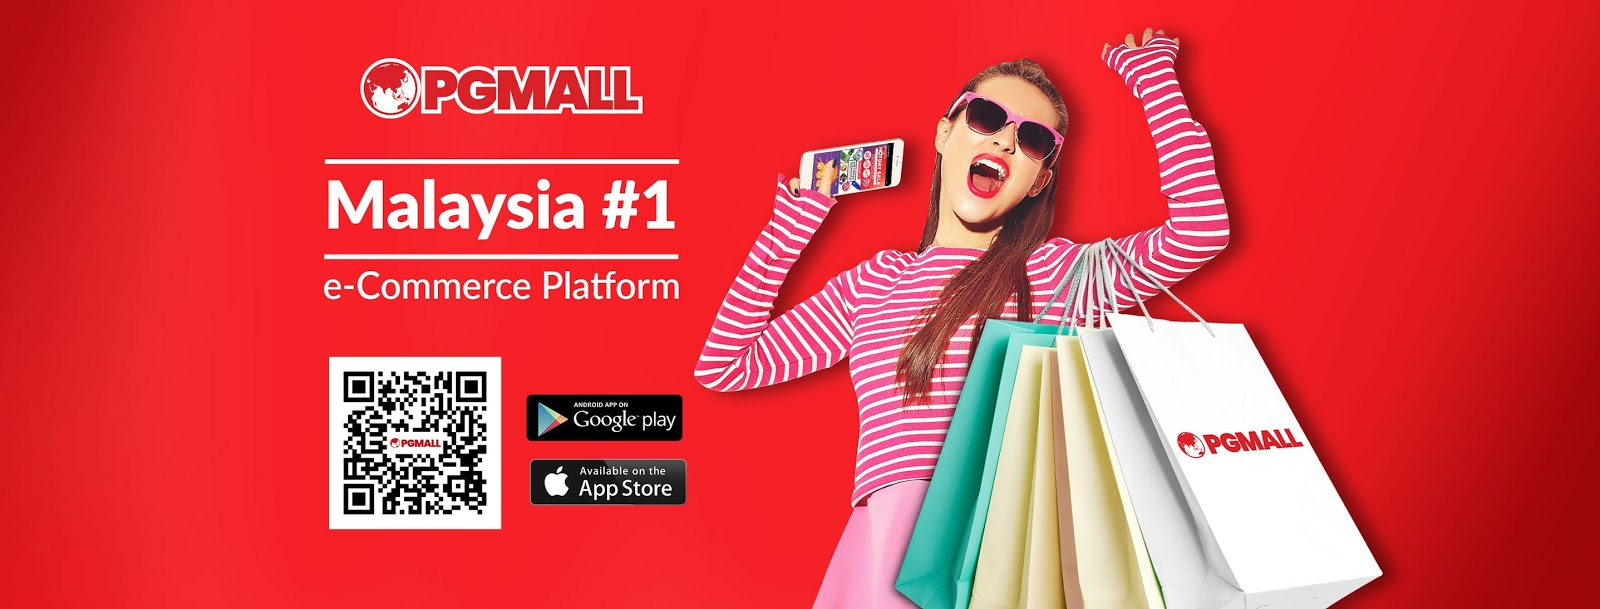 [REVIEW] PG Mall Birthday Sale! Malaysia #1 e-Commerce Platform